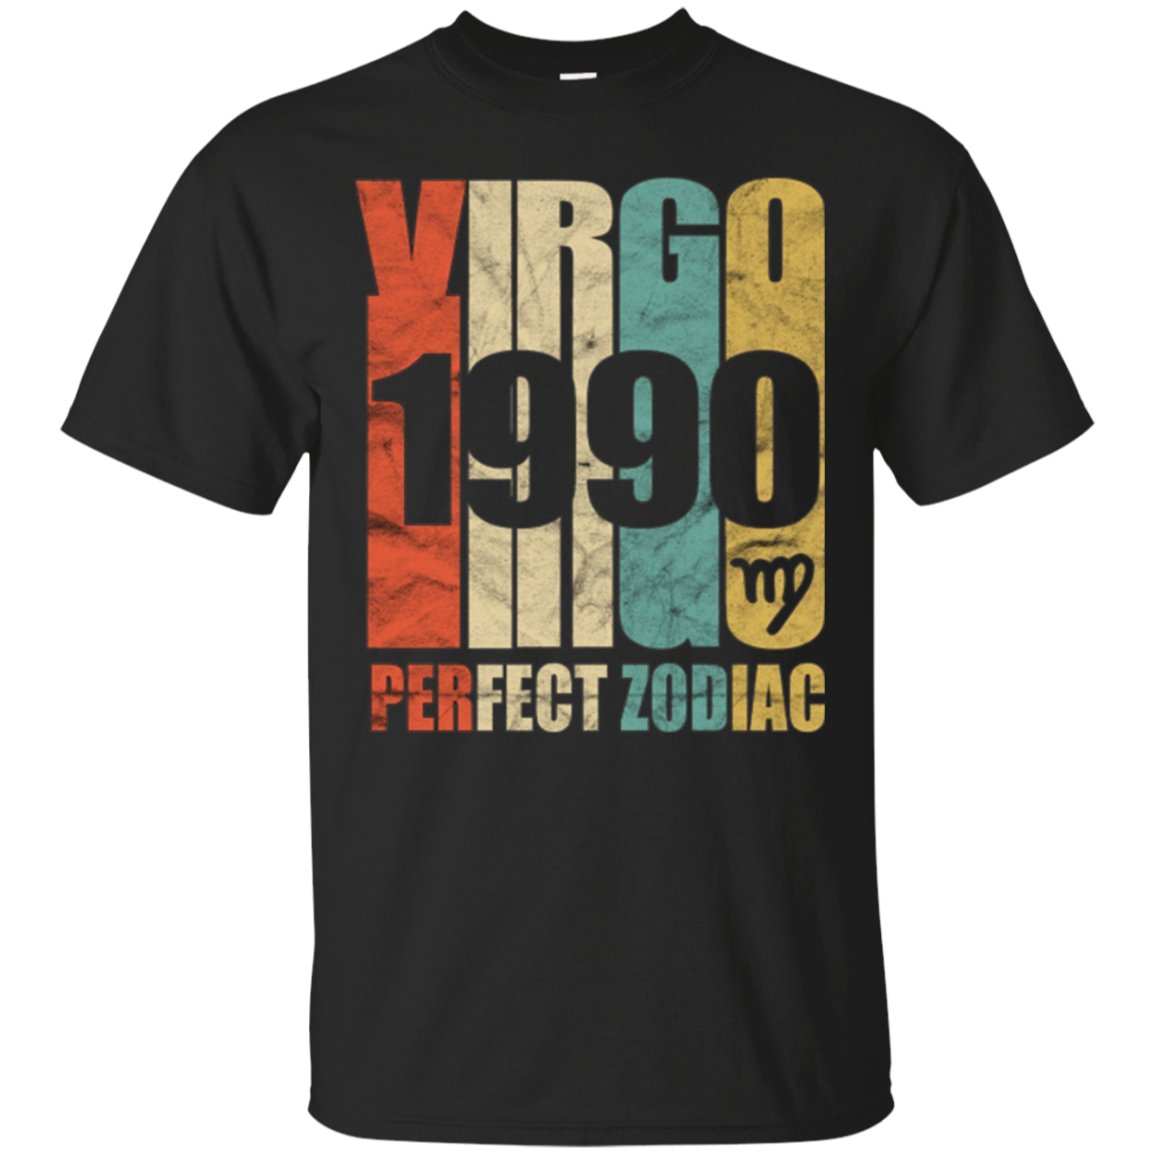 Vintage Virgo 1990 T-Shirt 27 yrs old Bday 27th Birthday Tee